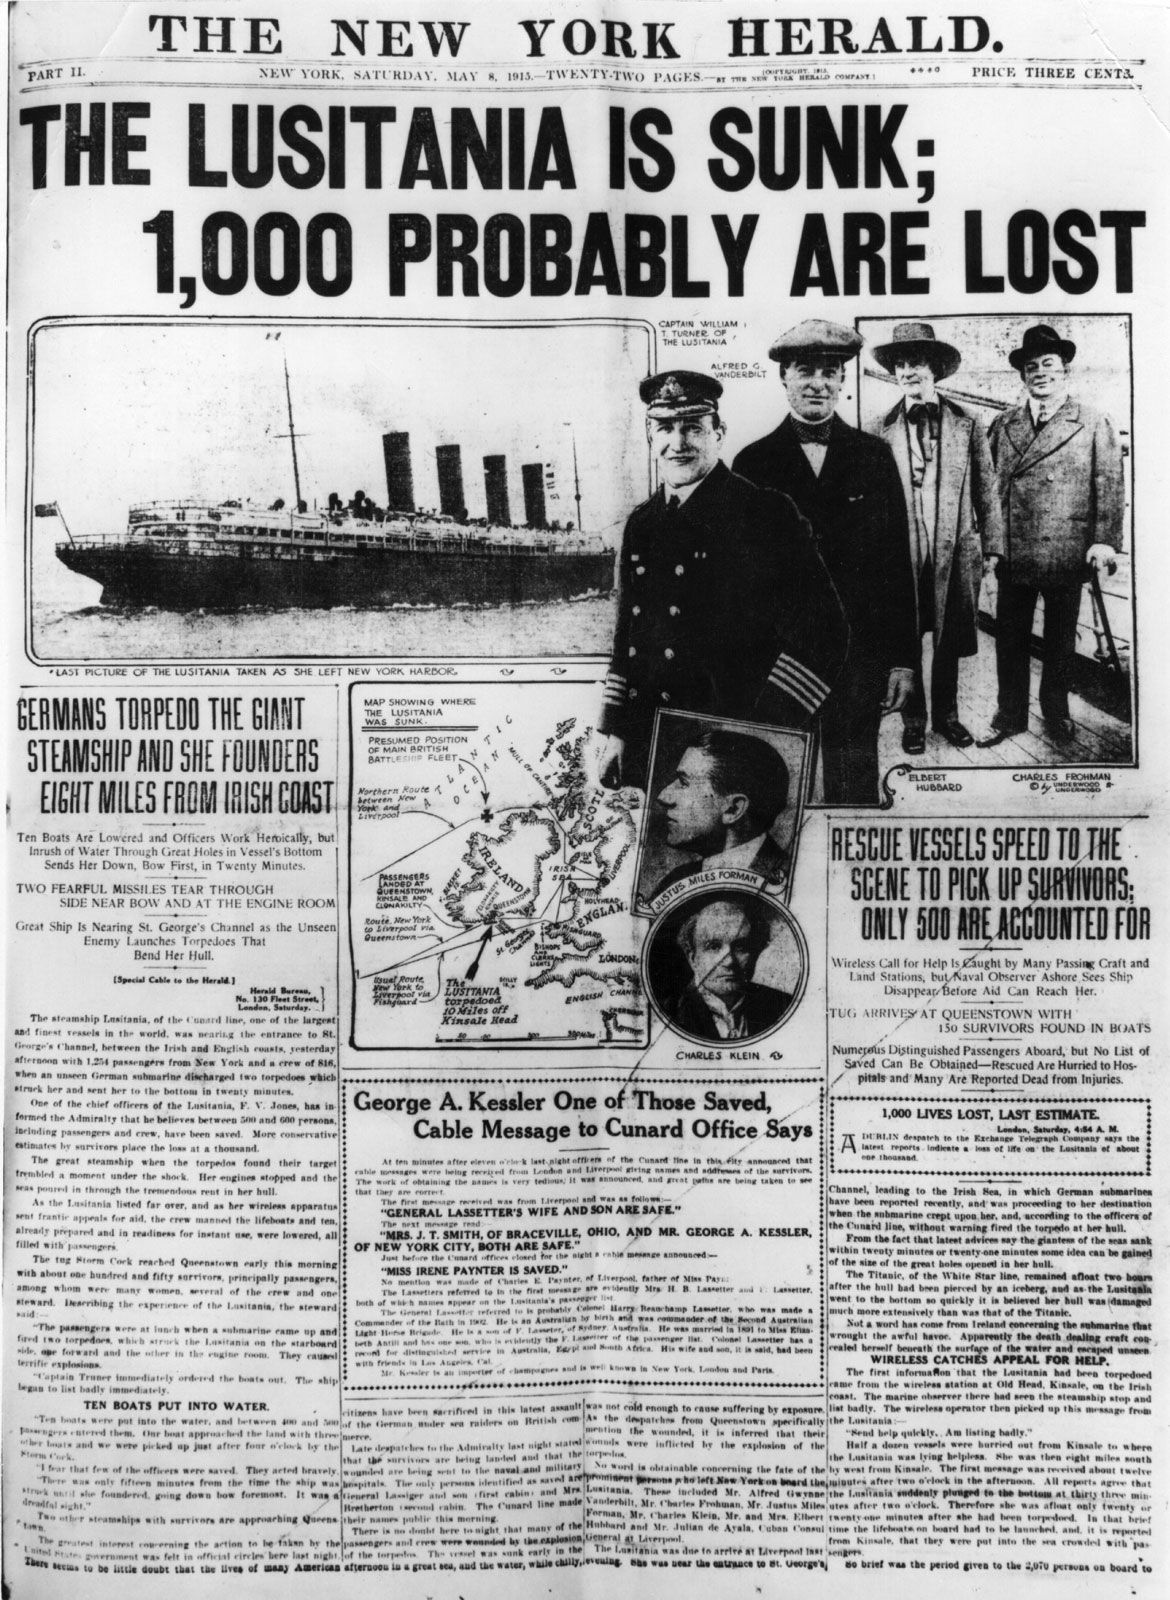 the sinking of the lusitania essay Some consider the sinking of the rms lusitania to be a churchillian  in the  book statesmanship: essays in honor of sir winston churchill.